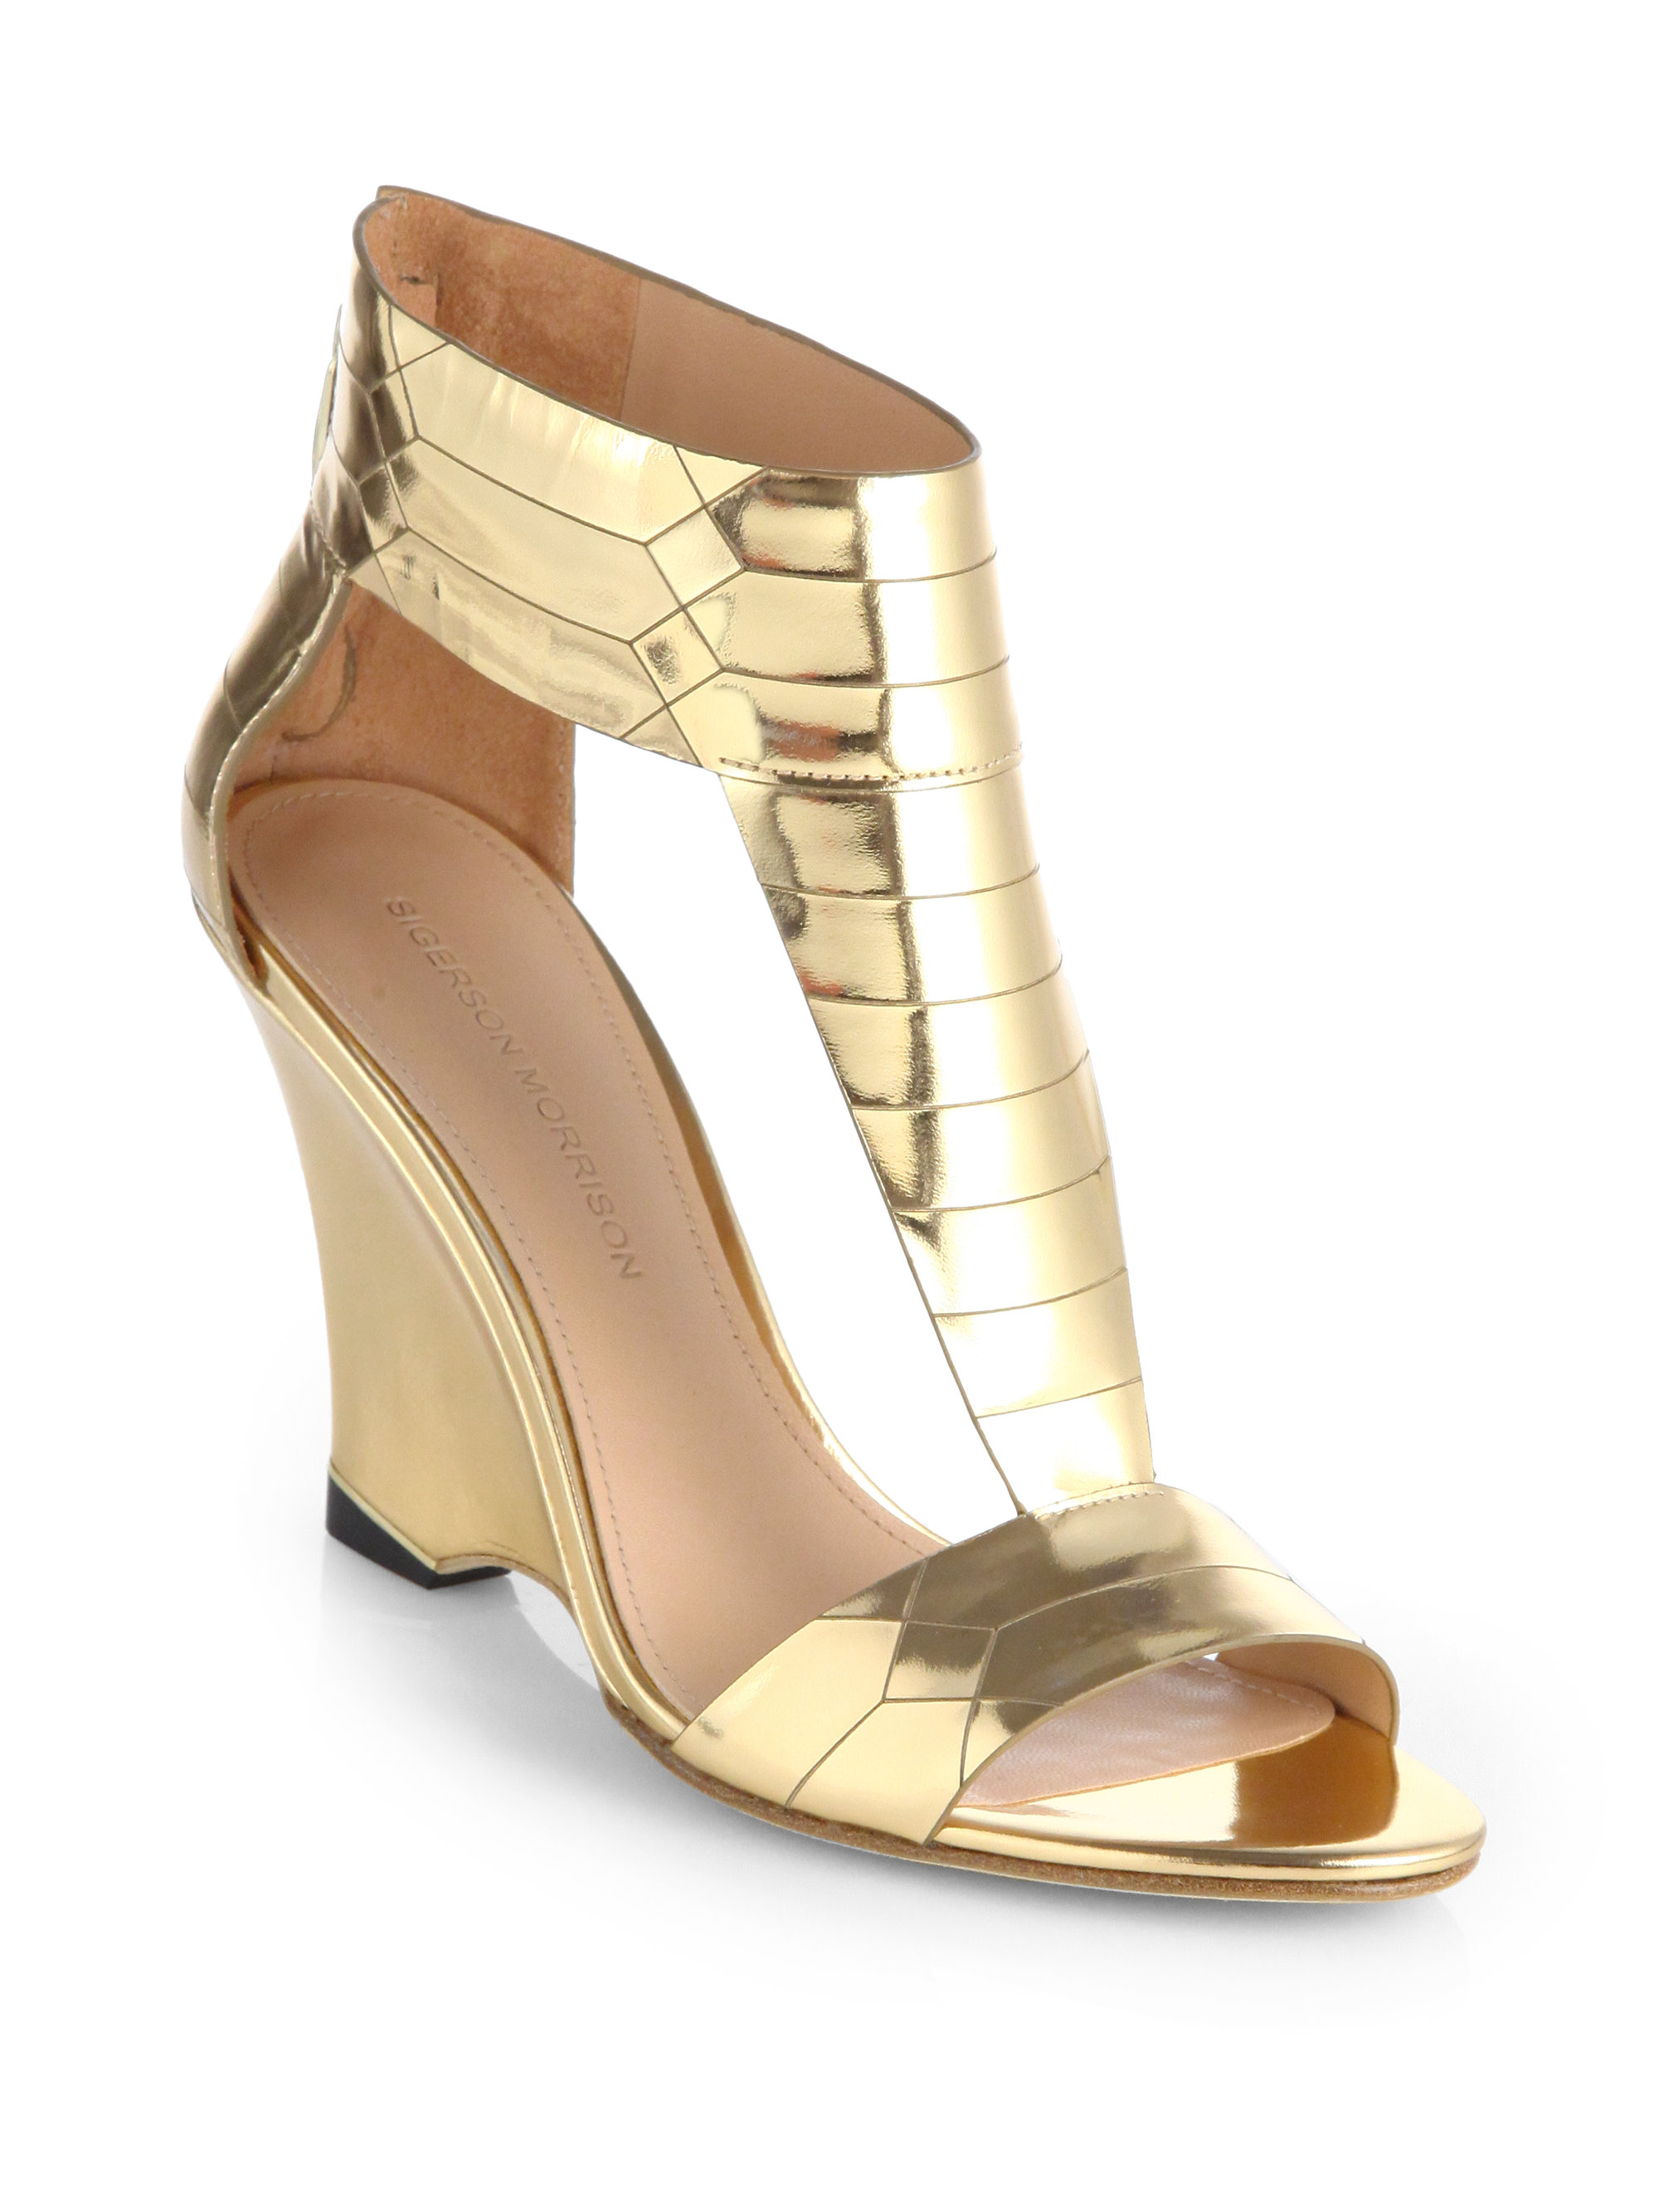 Prom shoes and metallic gold sandals from fabulous designer shoe collections. Whatever style you need, we have women's formal dress shoes in gold from sexy high heels, jeweled short heels, open peep toes, or closed pumps.